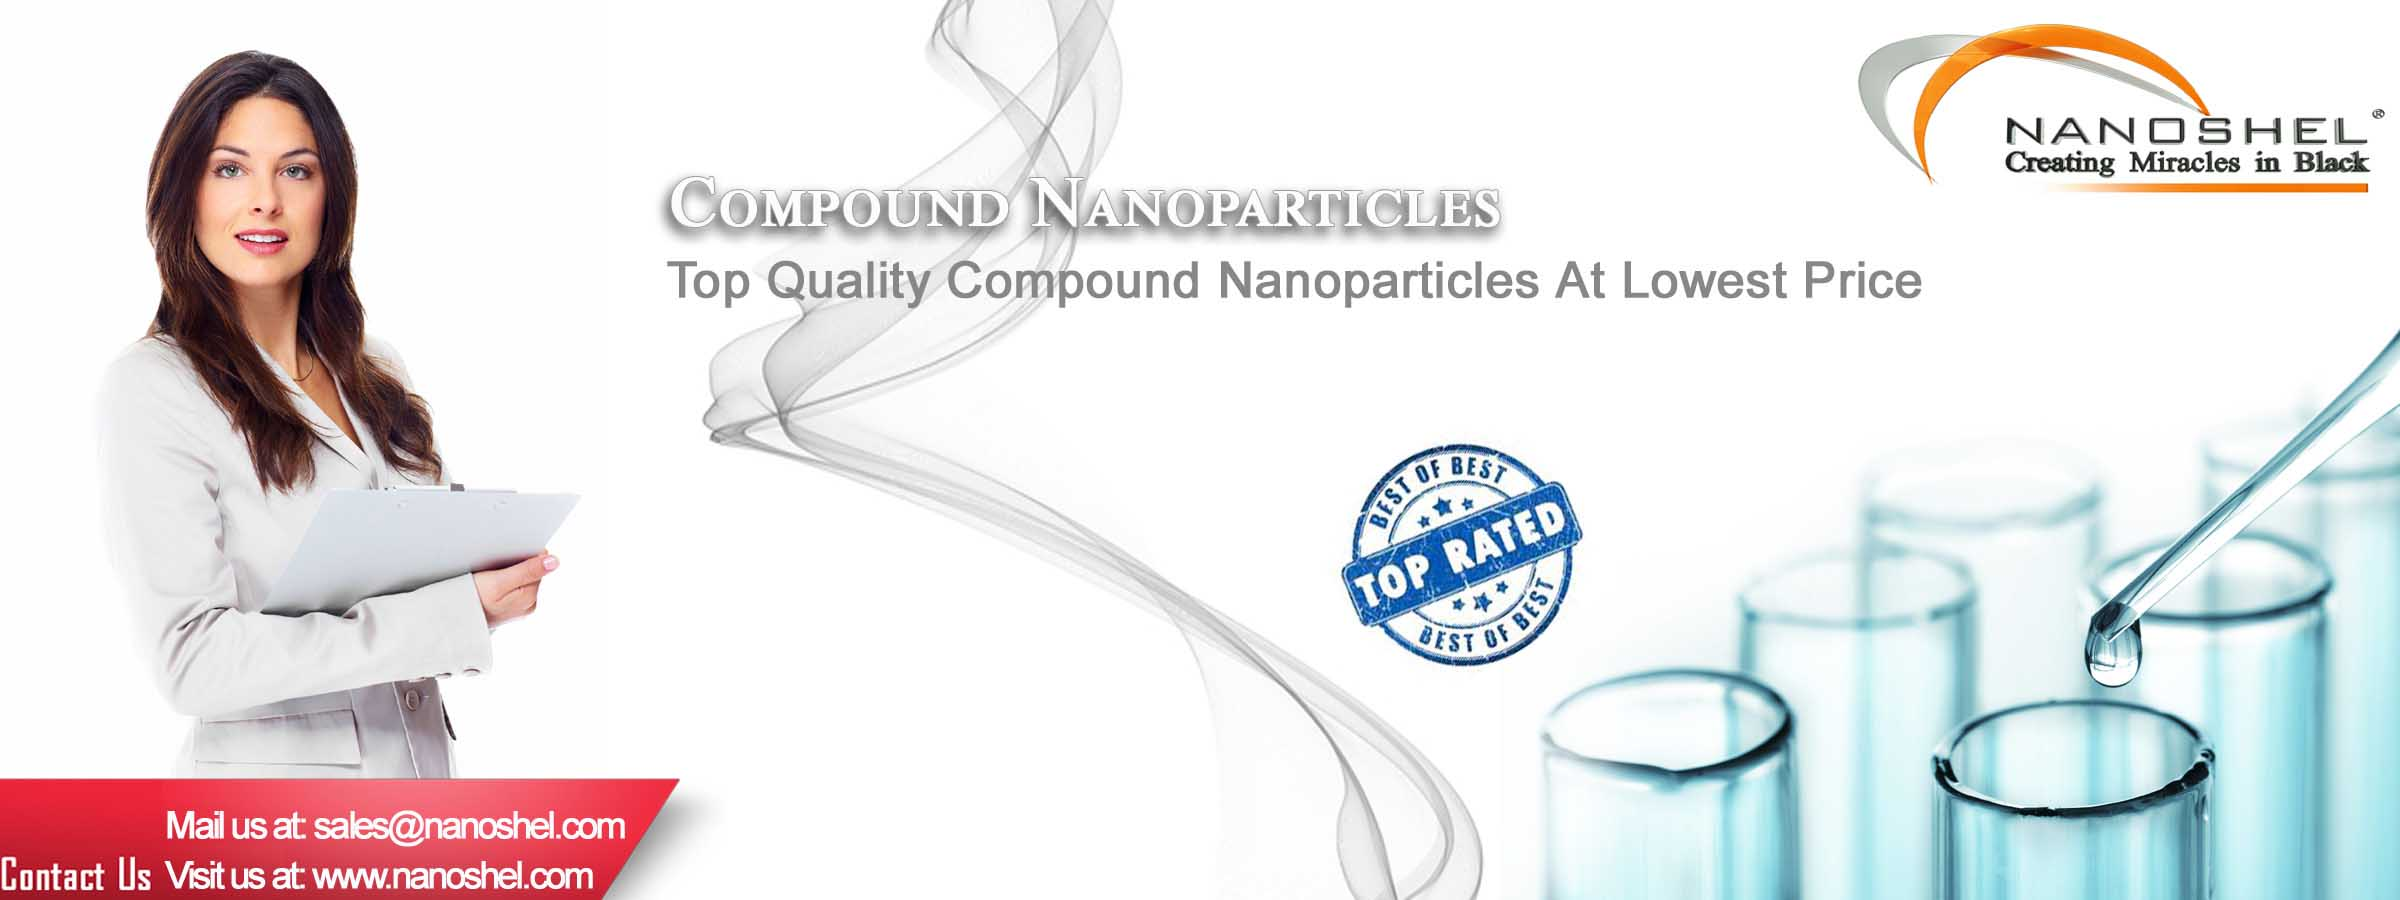 Silver Citrate Nanoparticles